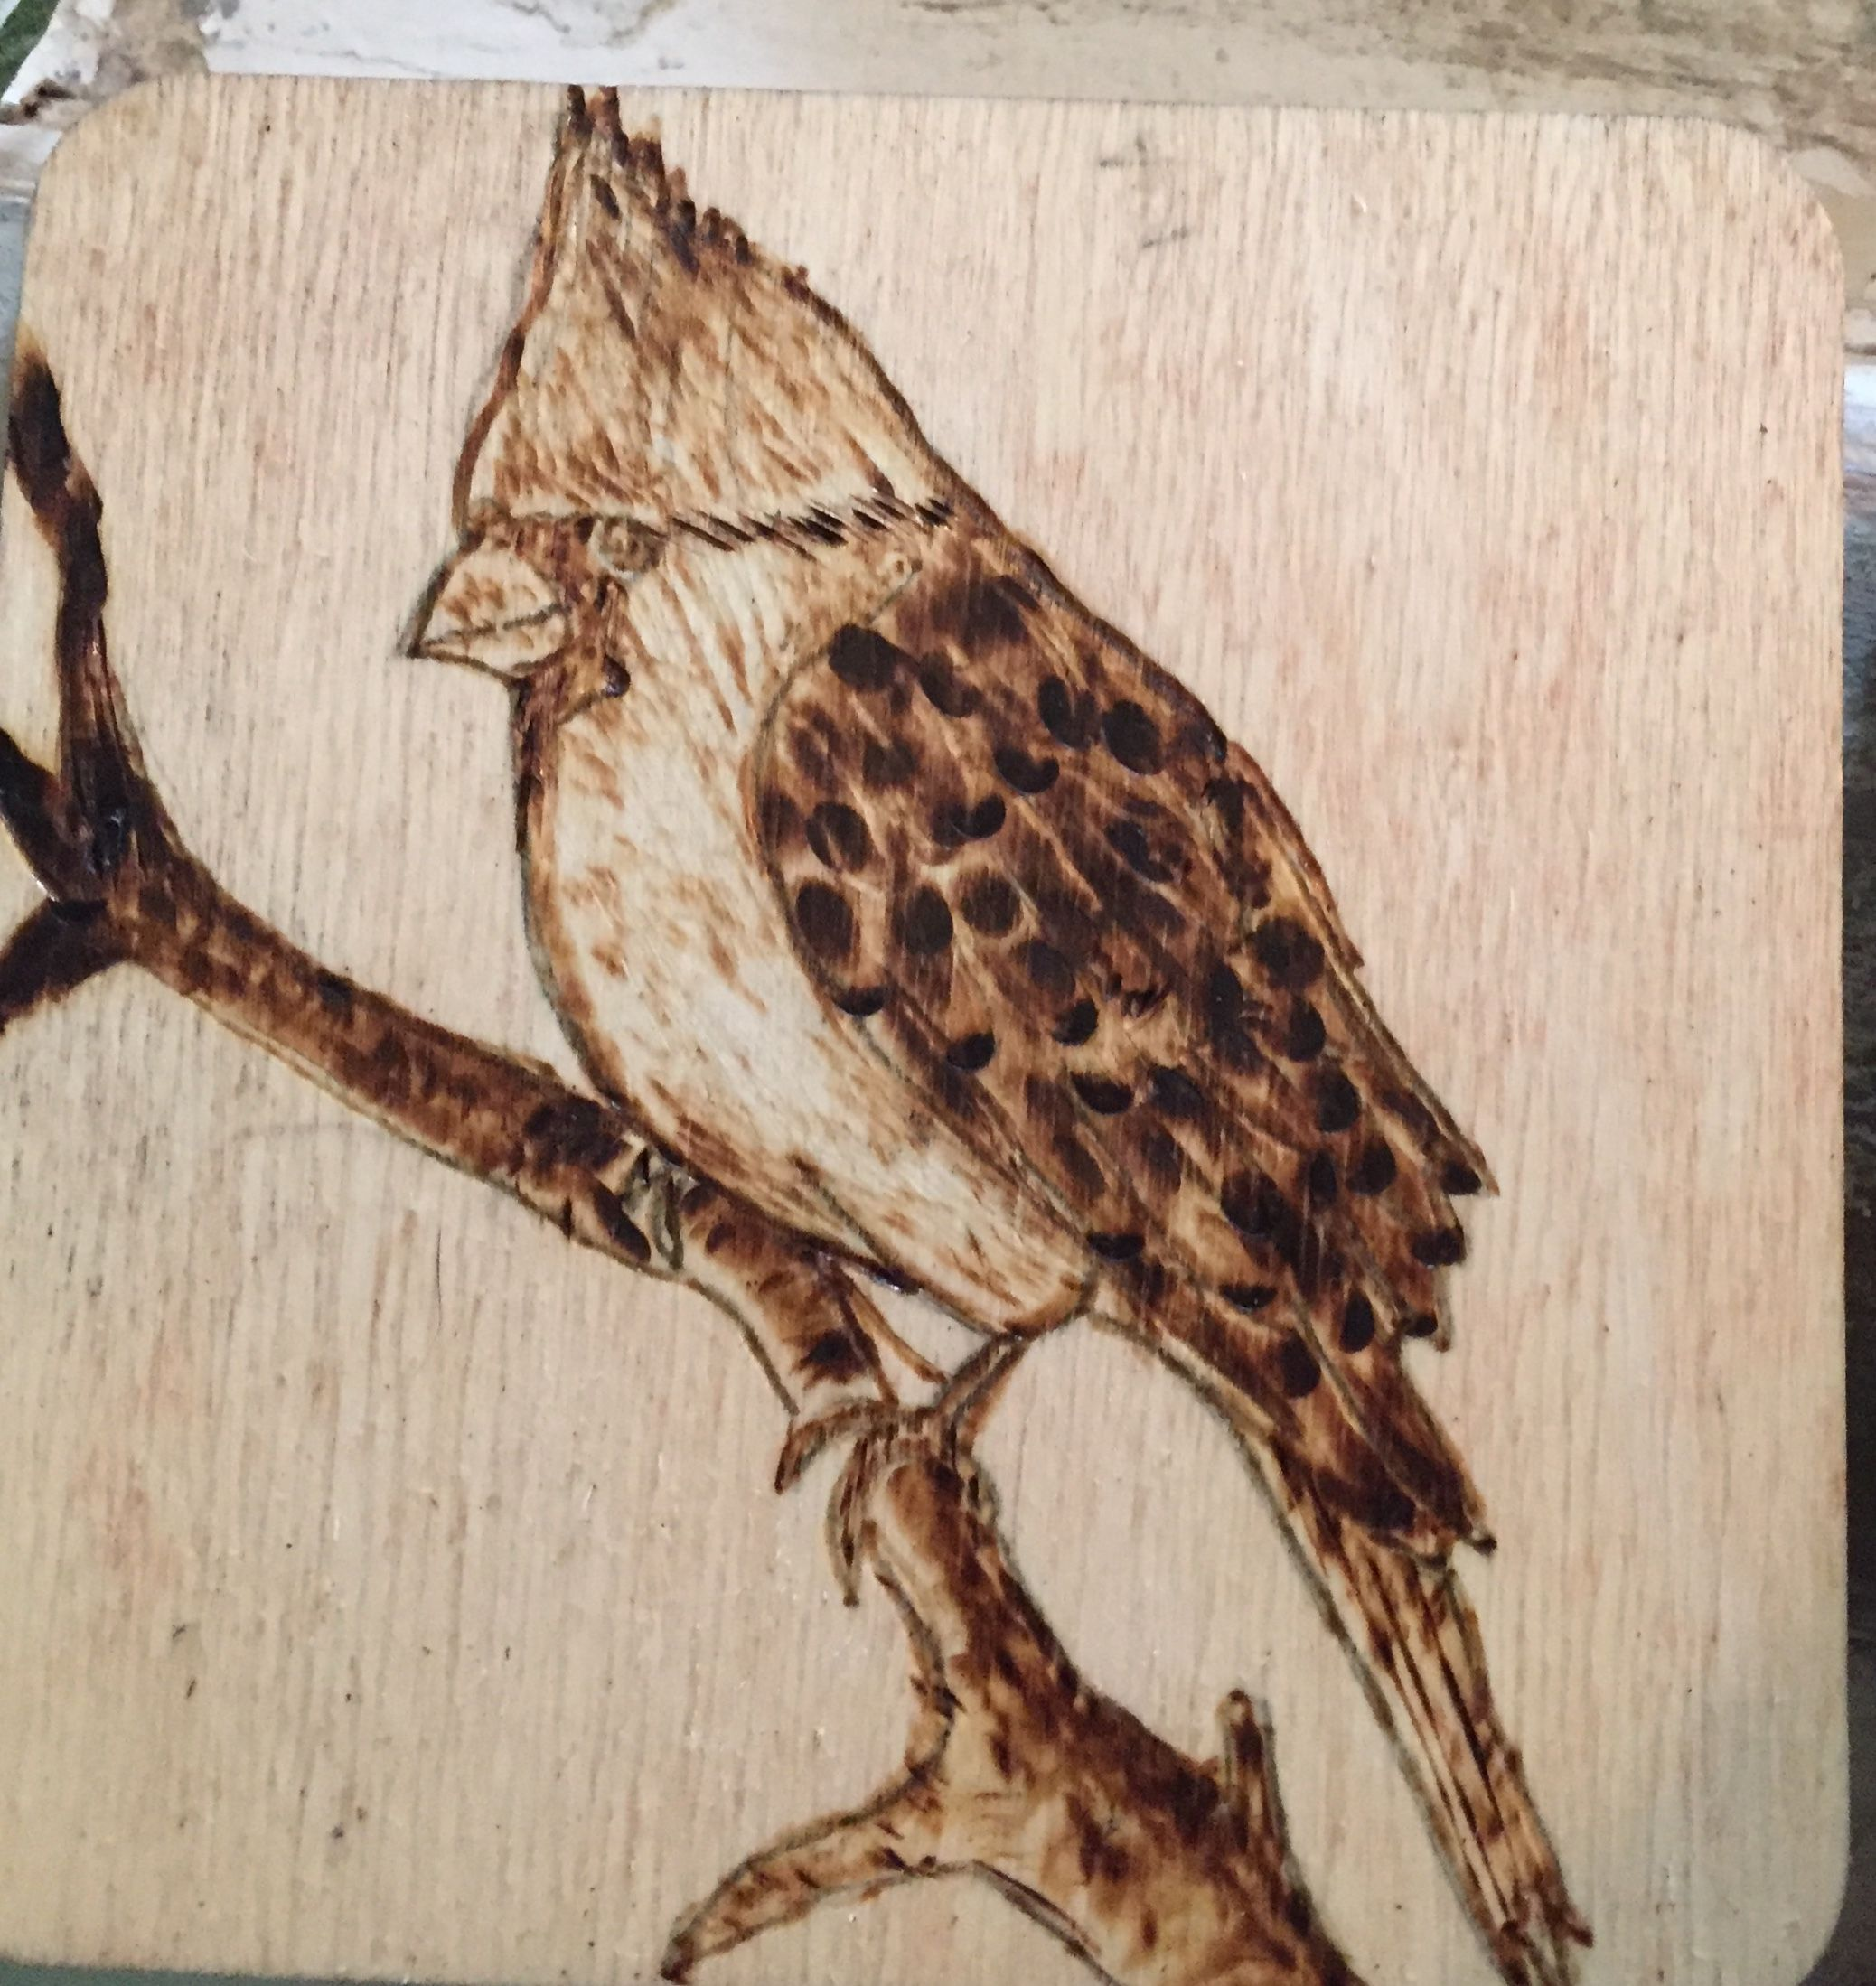 50+ Arts and crafts for adults argos information